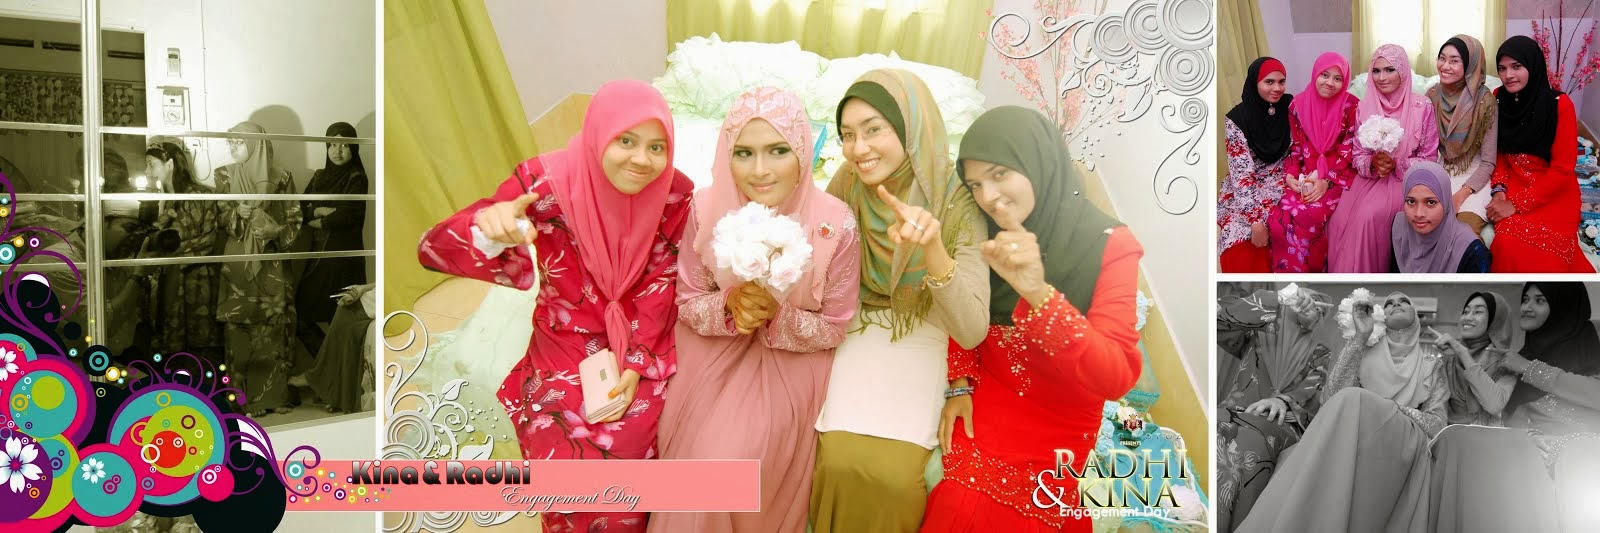 Radhi&Kina Engagement Day